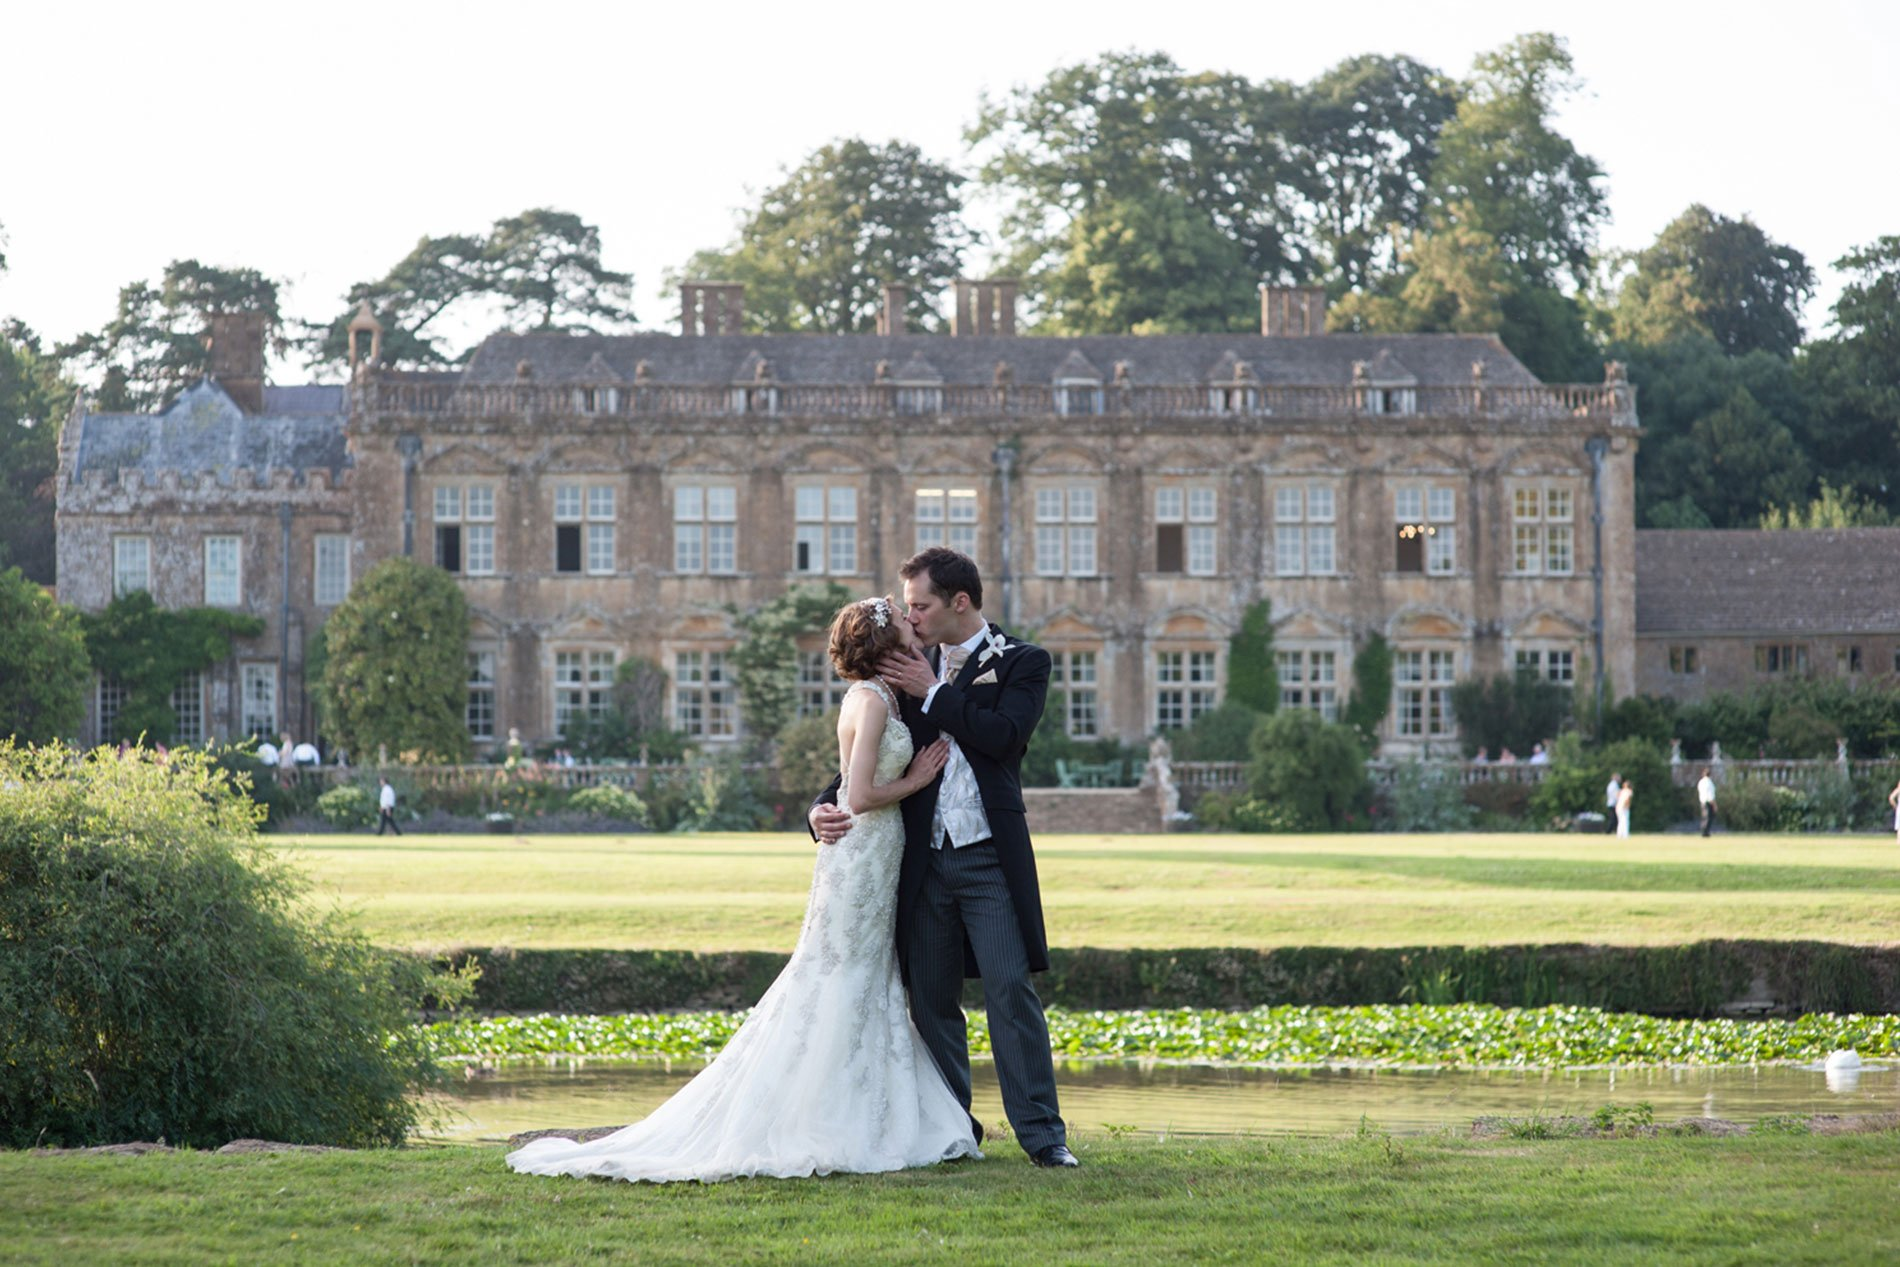 Brympton House Wedding Venue, Yeovil Somerset